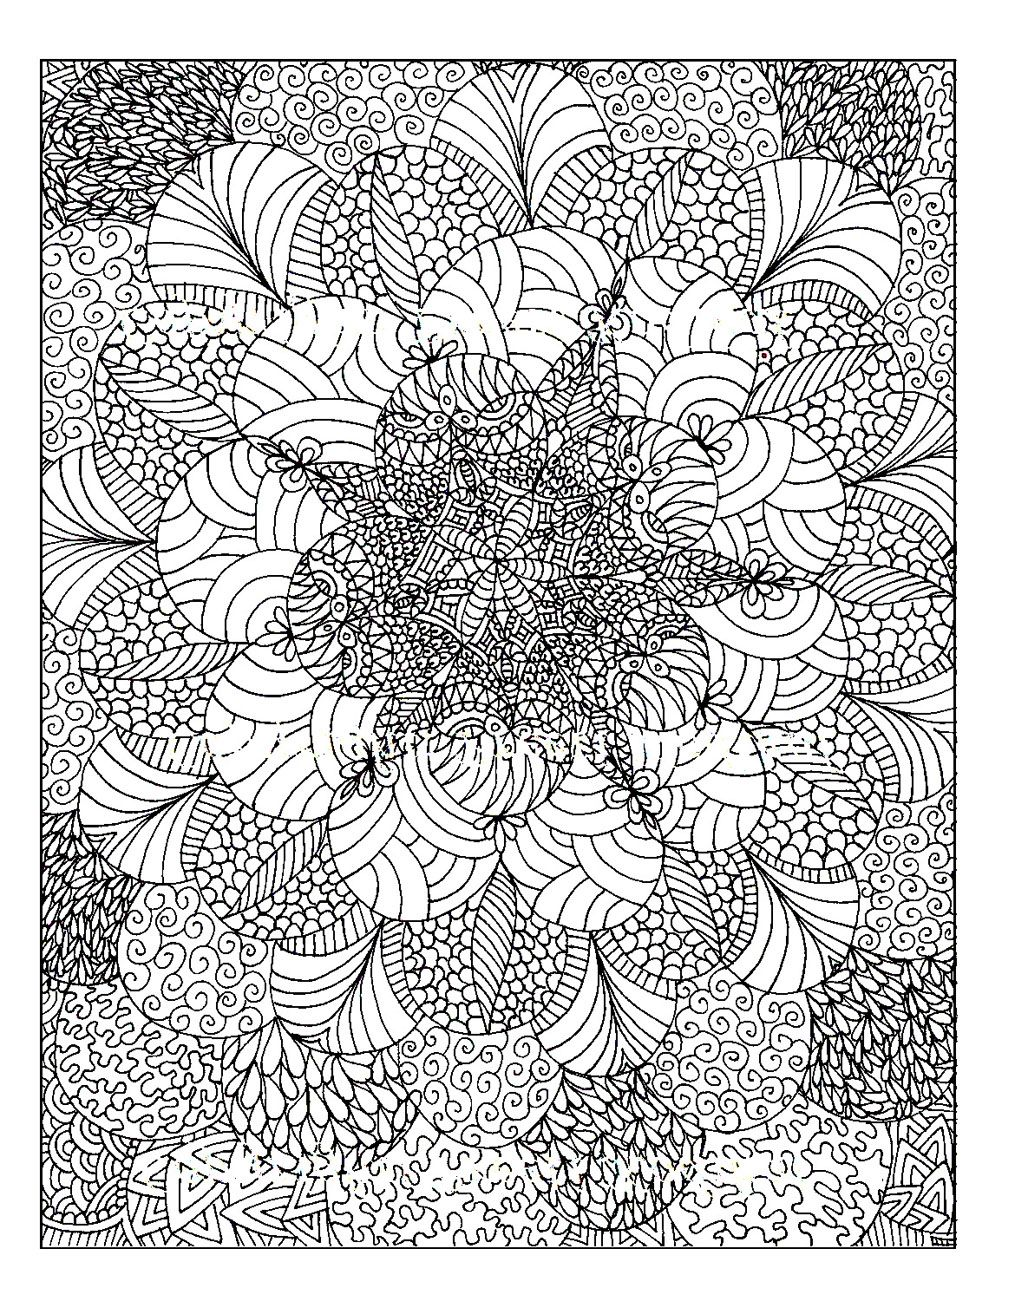 free printable coloring pages for adults zen : Free Coloring Page Coloring Adult Rosaces Abstract Floral Image Composed Of